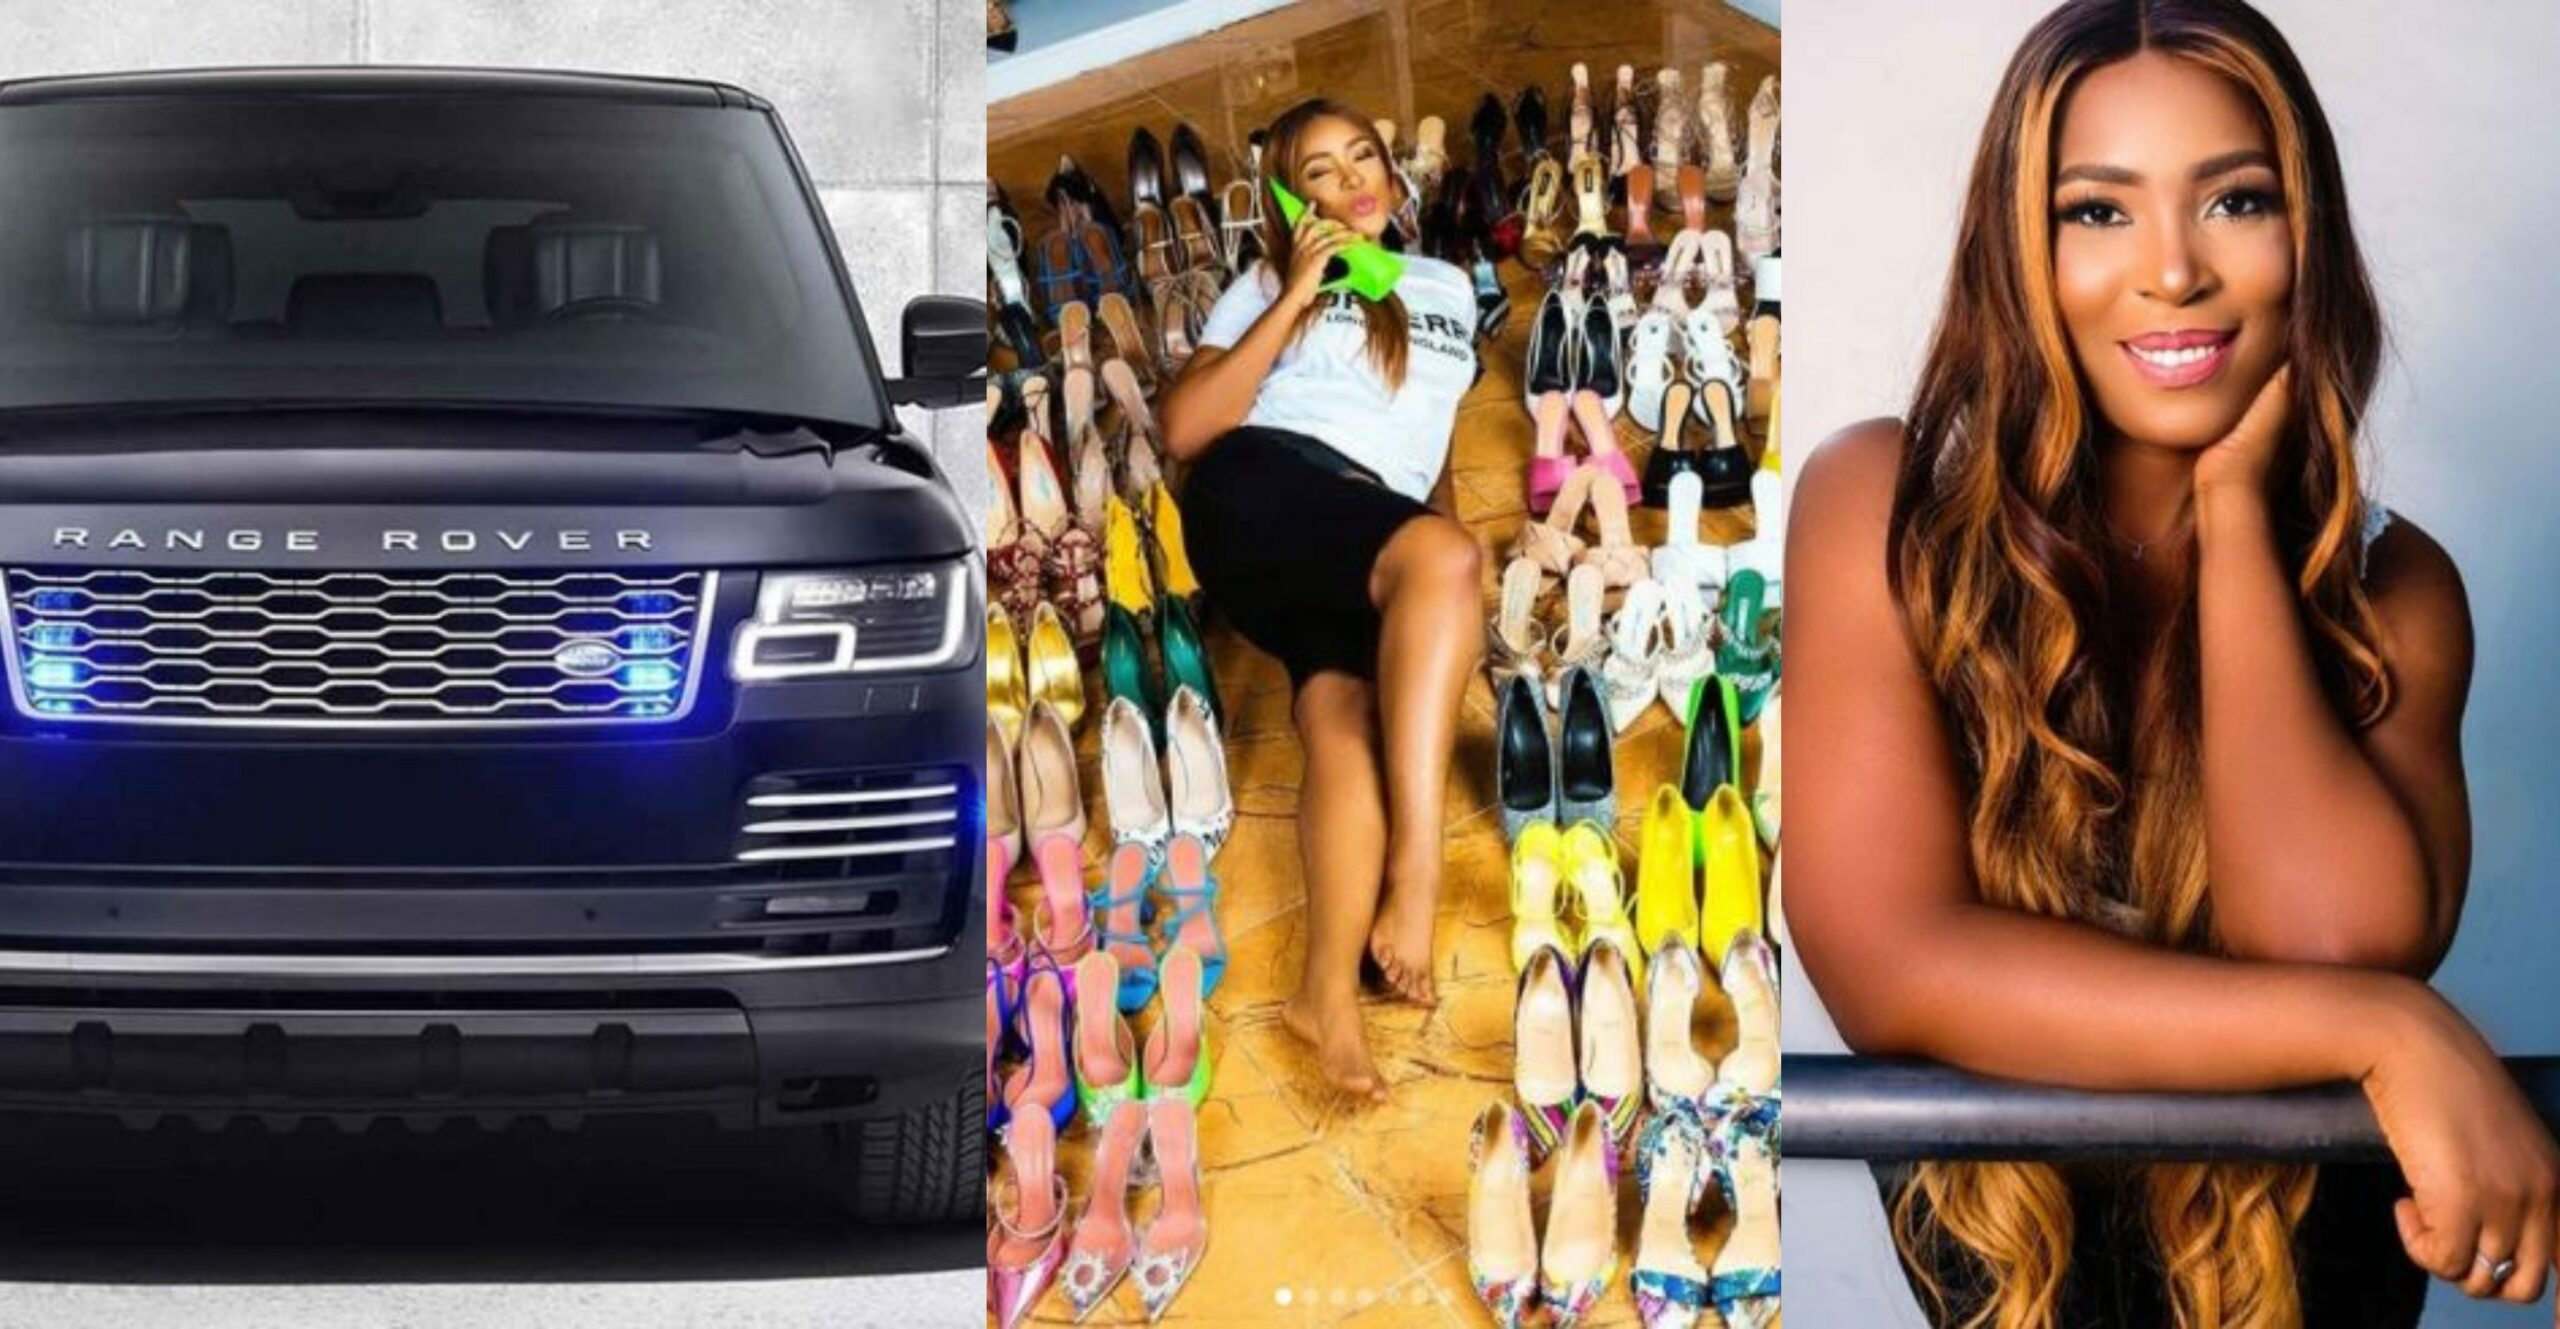 After buying 85 pairs of designer shoes & bags, Linda Ikeji buys N50 million Range Rover Autography 2020 as birthday gift